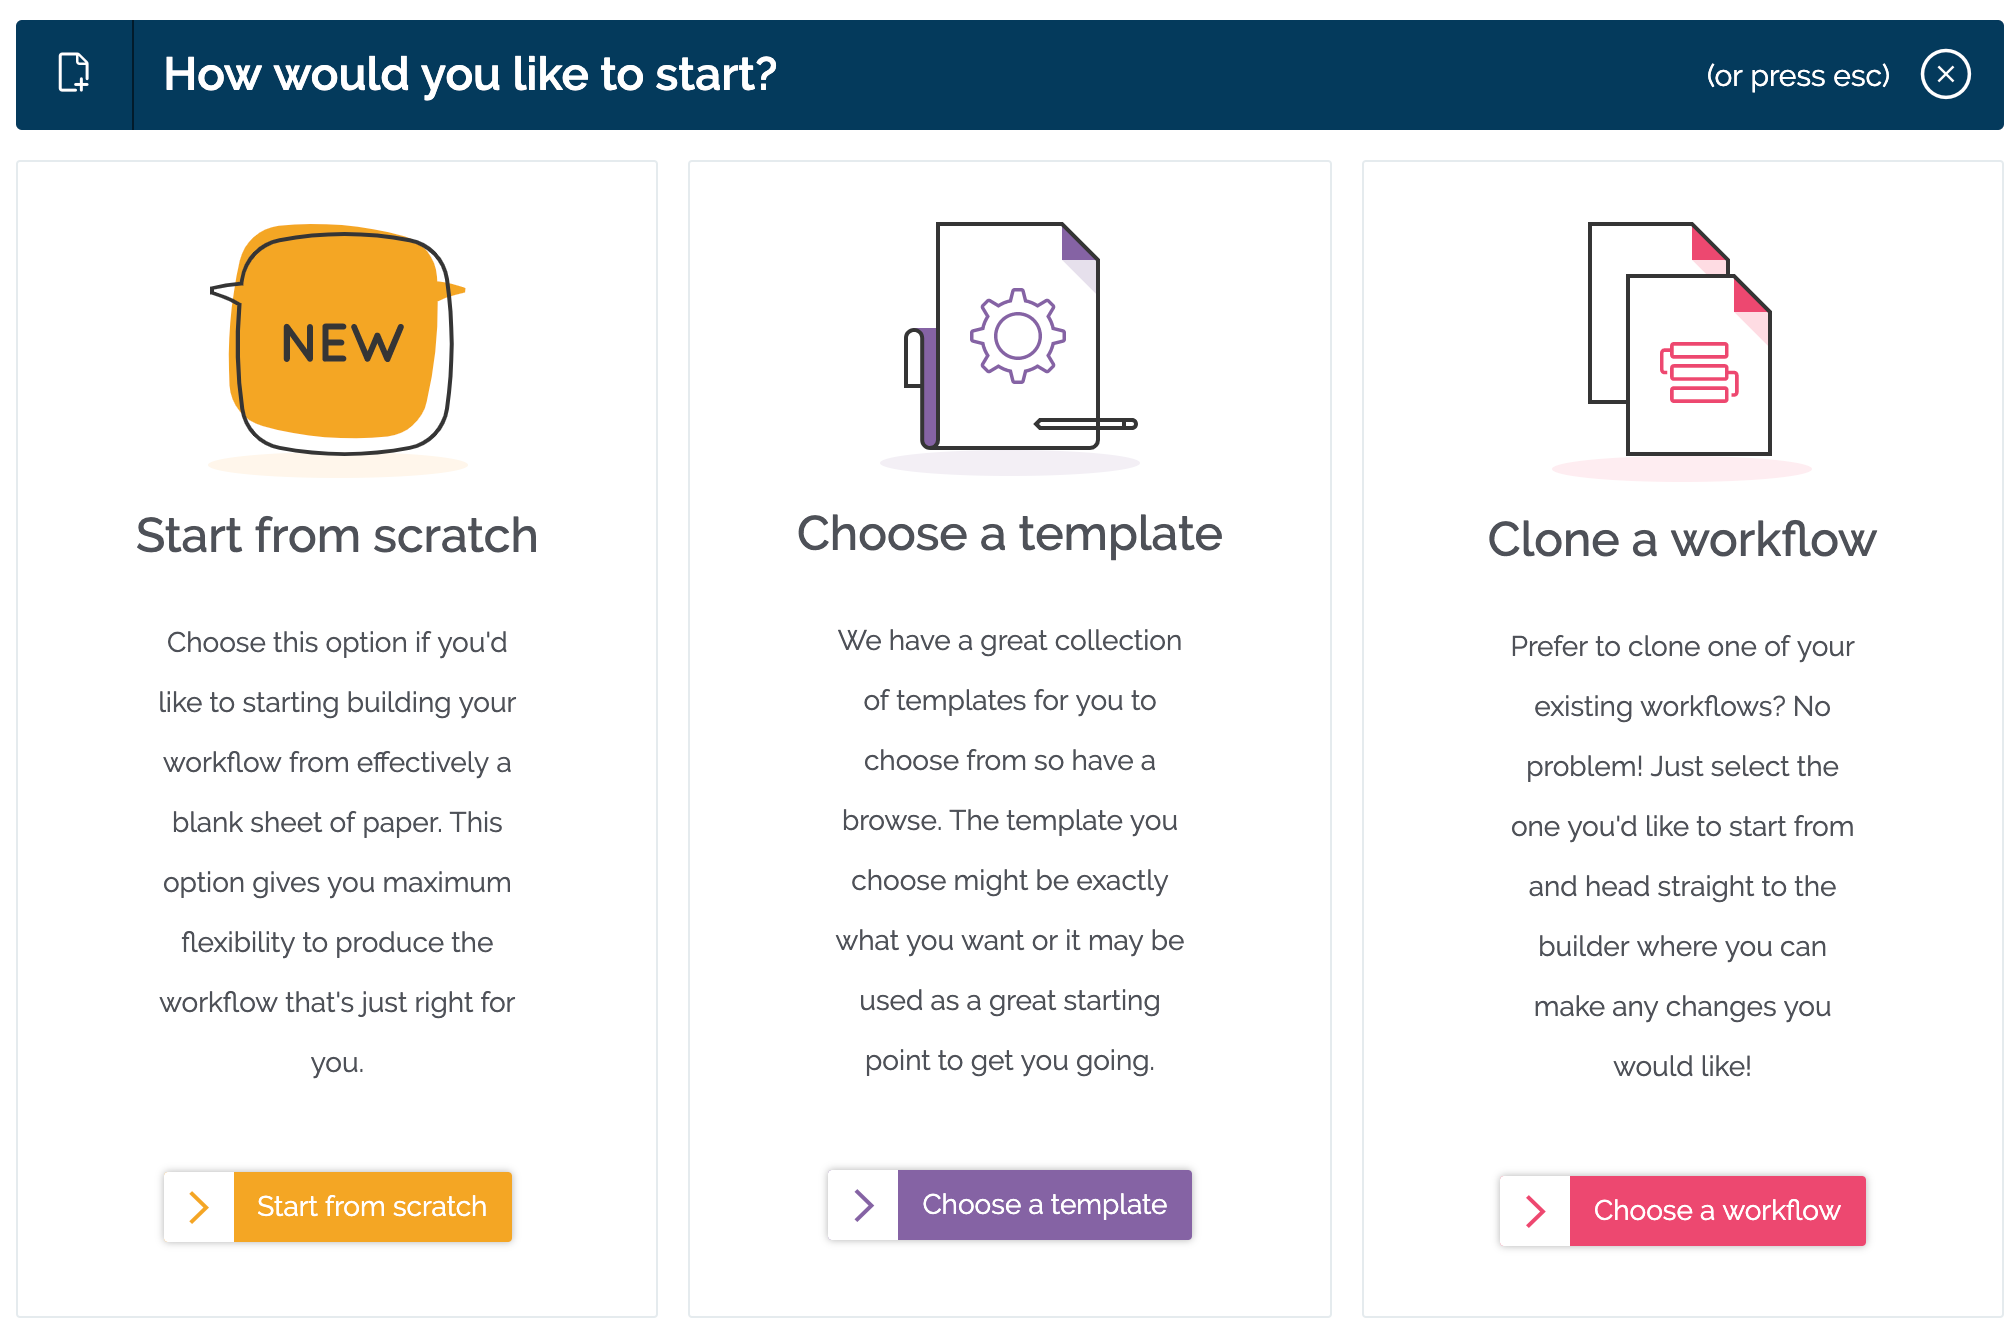 Workflows: How would you like to start?